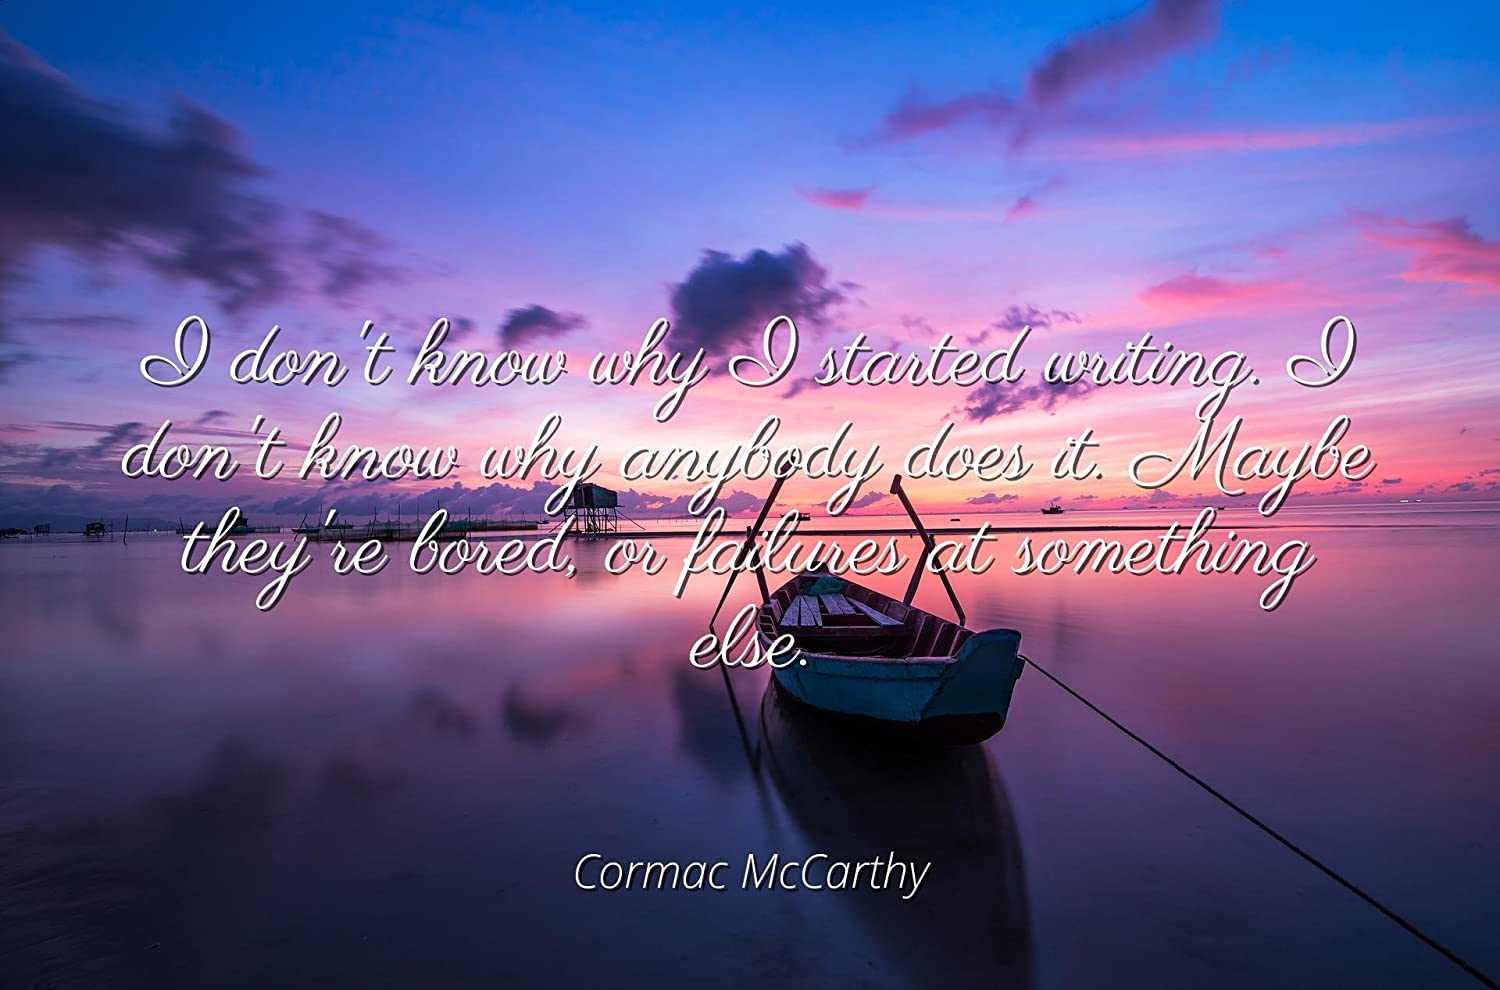 Cormac Mccarthy Quotes 2